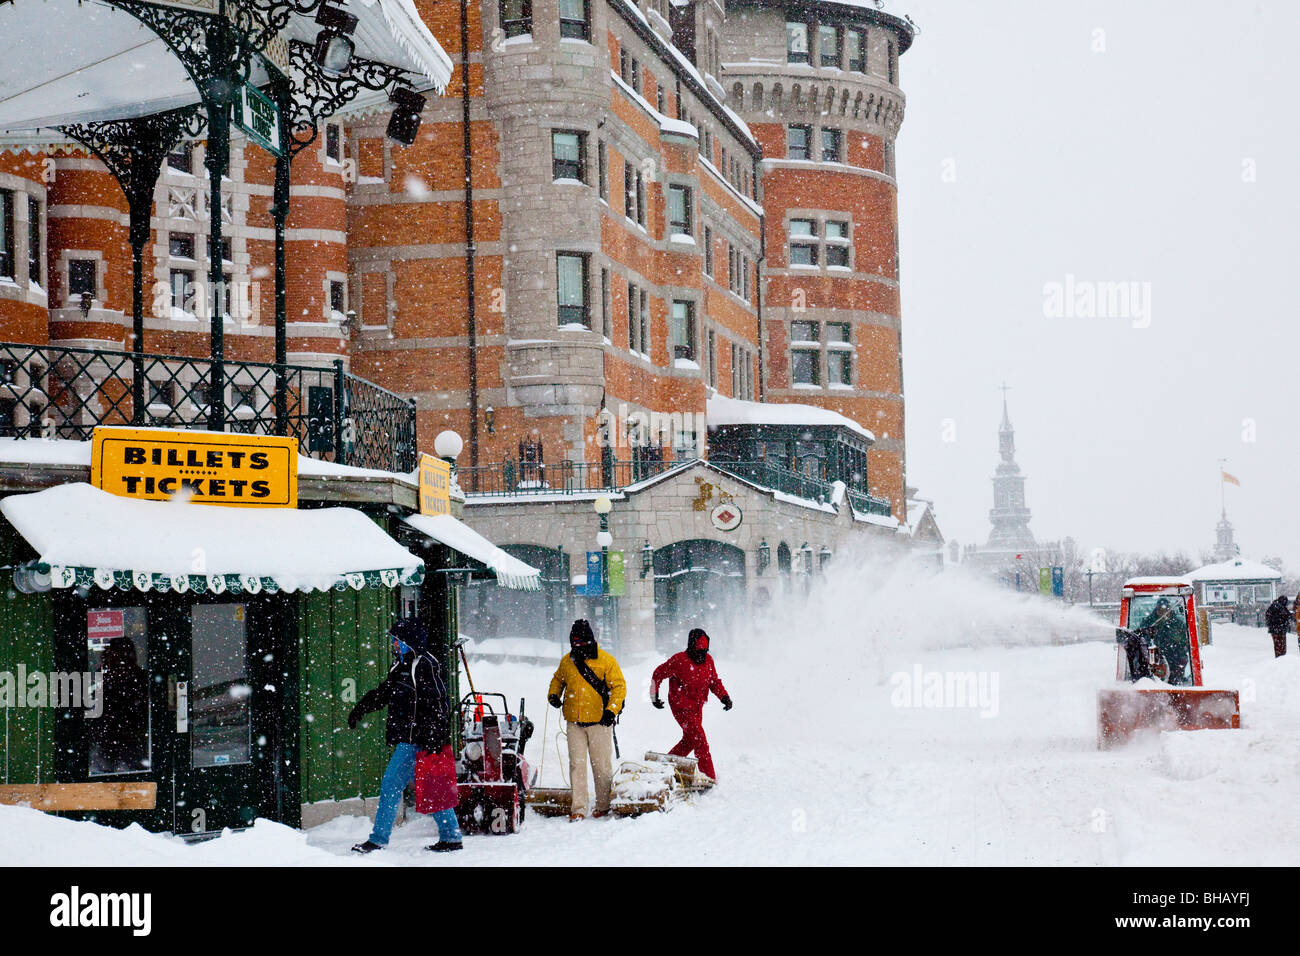 Snowing at the Chateau Frontenac in Old Quebec City - Stock Image